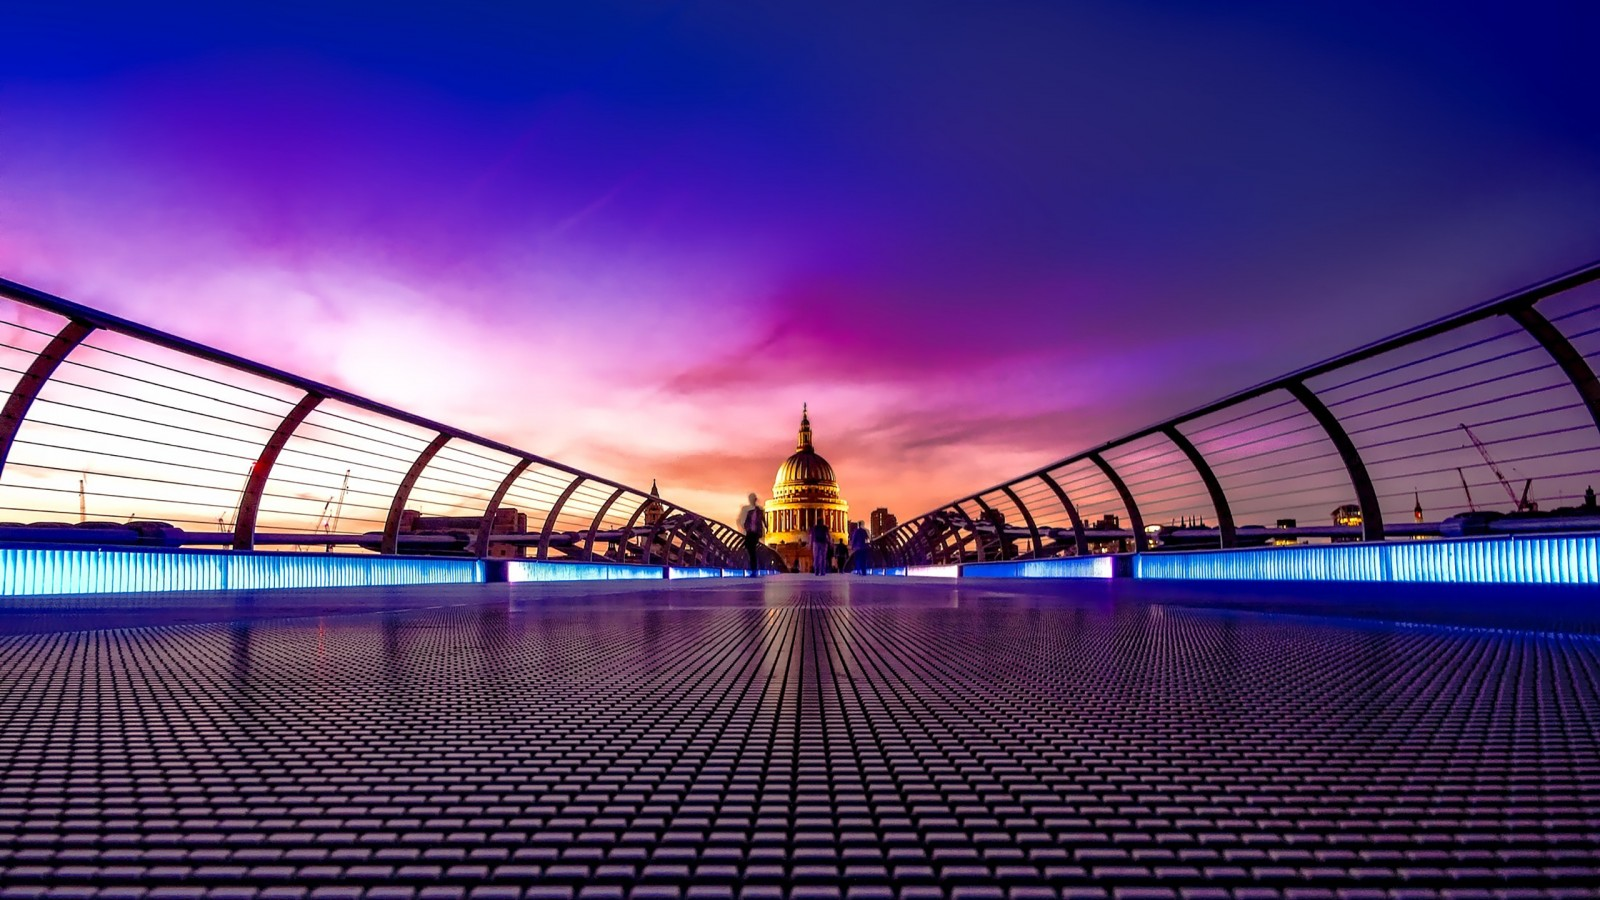 Future Cars Wallpapers Free Download Millennium Bridge London Wallpapers Hd Wallpapers Id